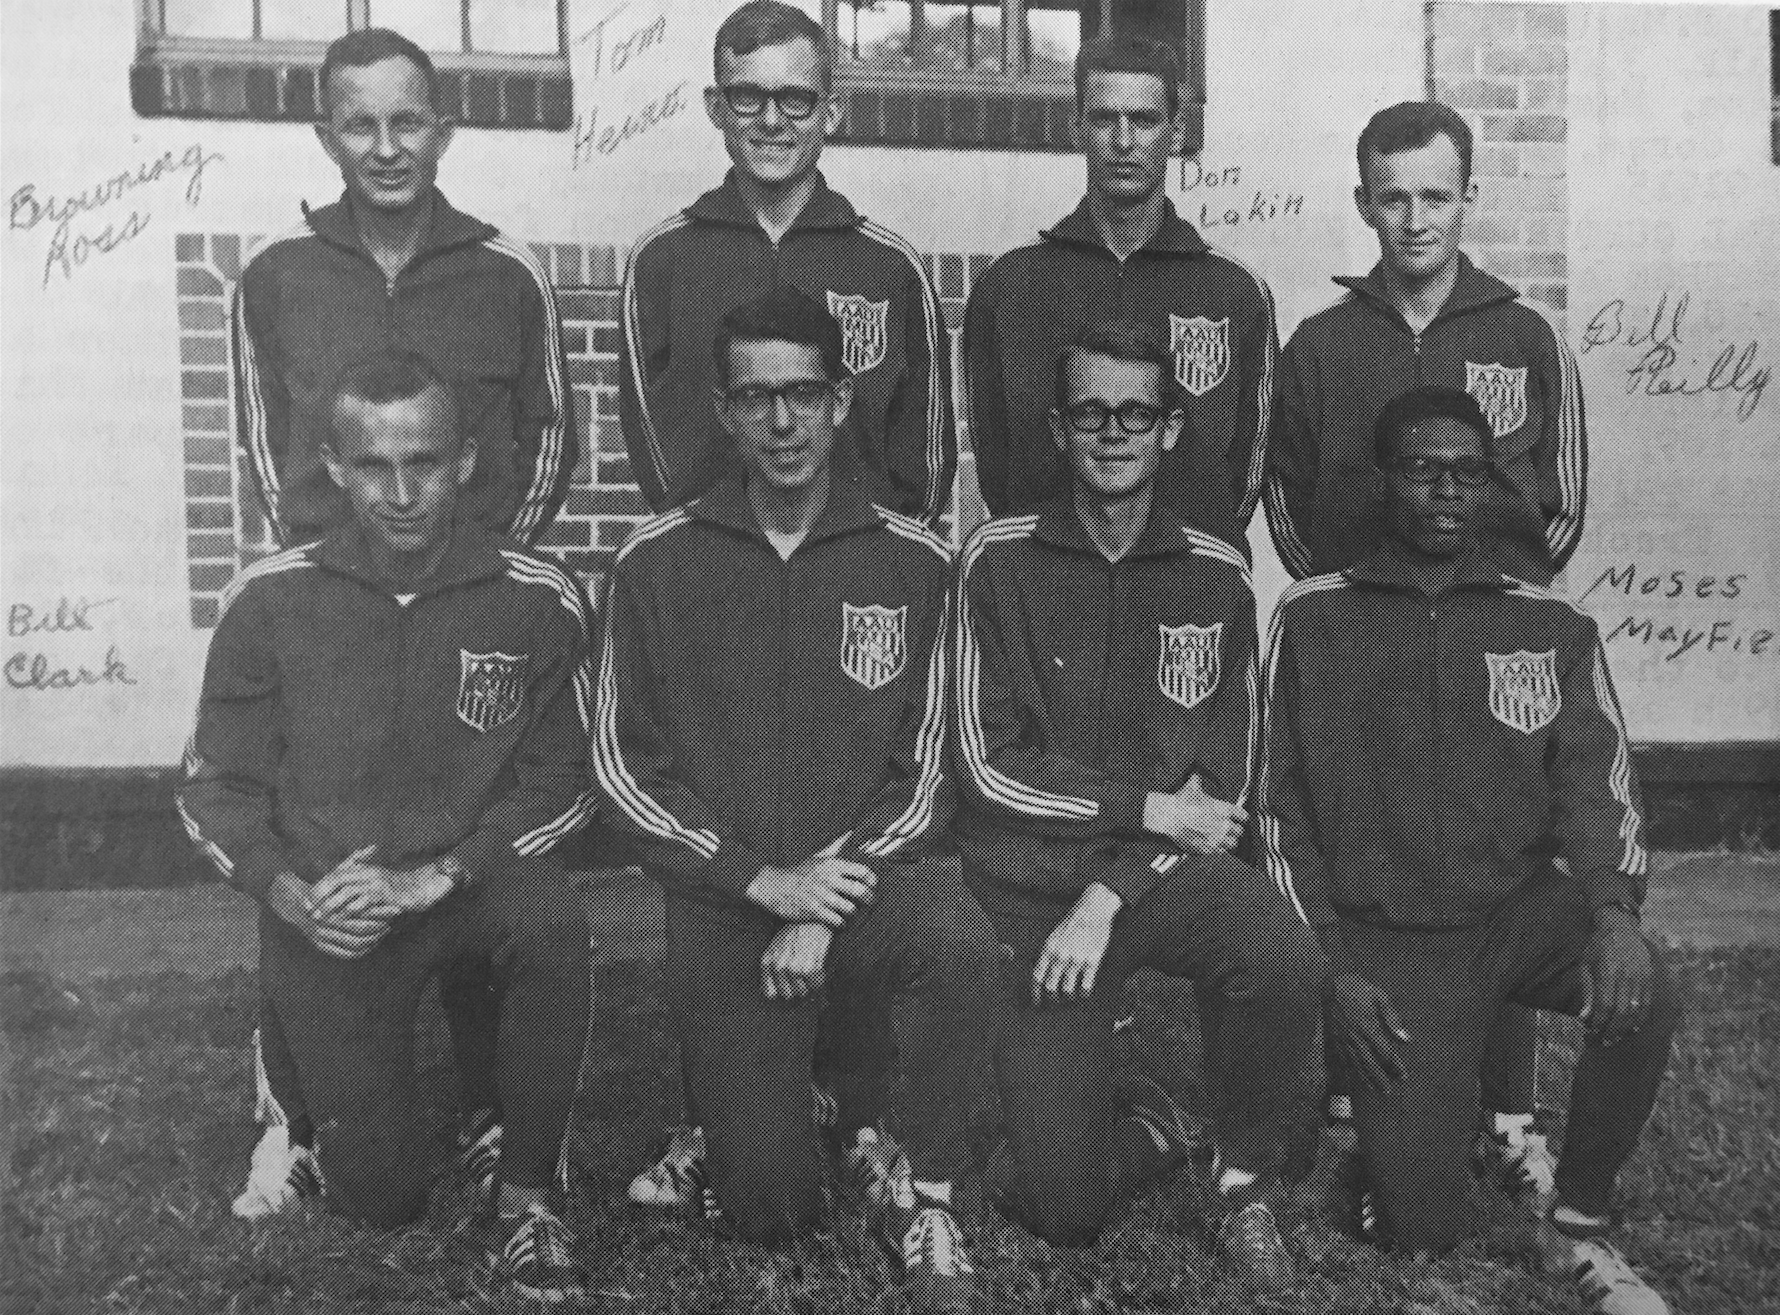 Tom Heinonen, Pictured in the Upper Row (Middle-left), becomes the first TCTC athlete to represent TEam USA in International Competition as a member of the 1968 USA International XC team.